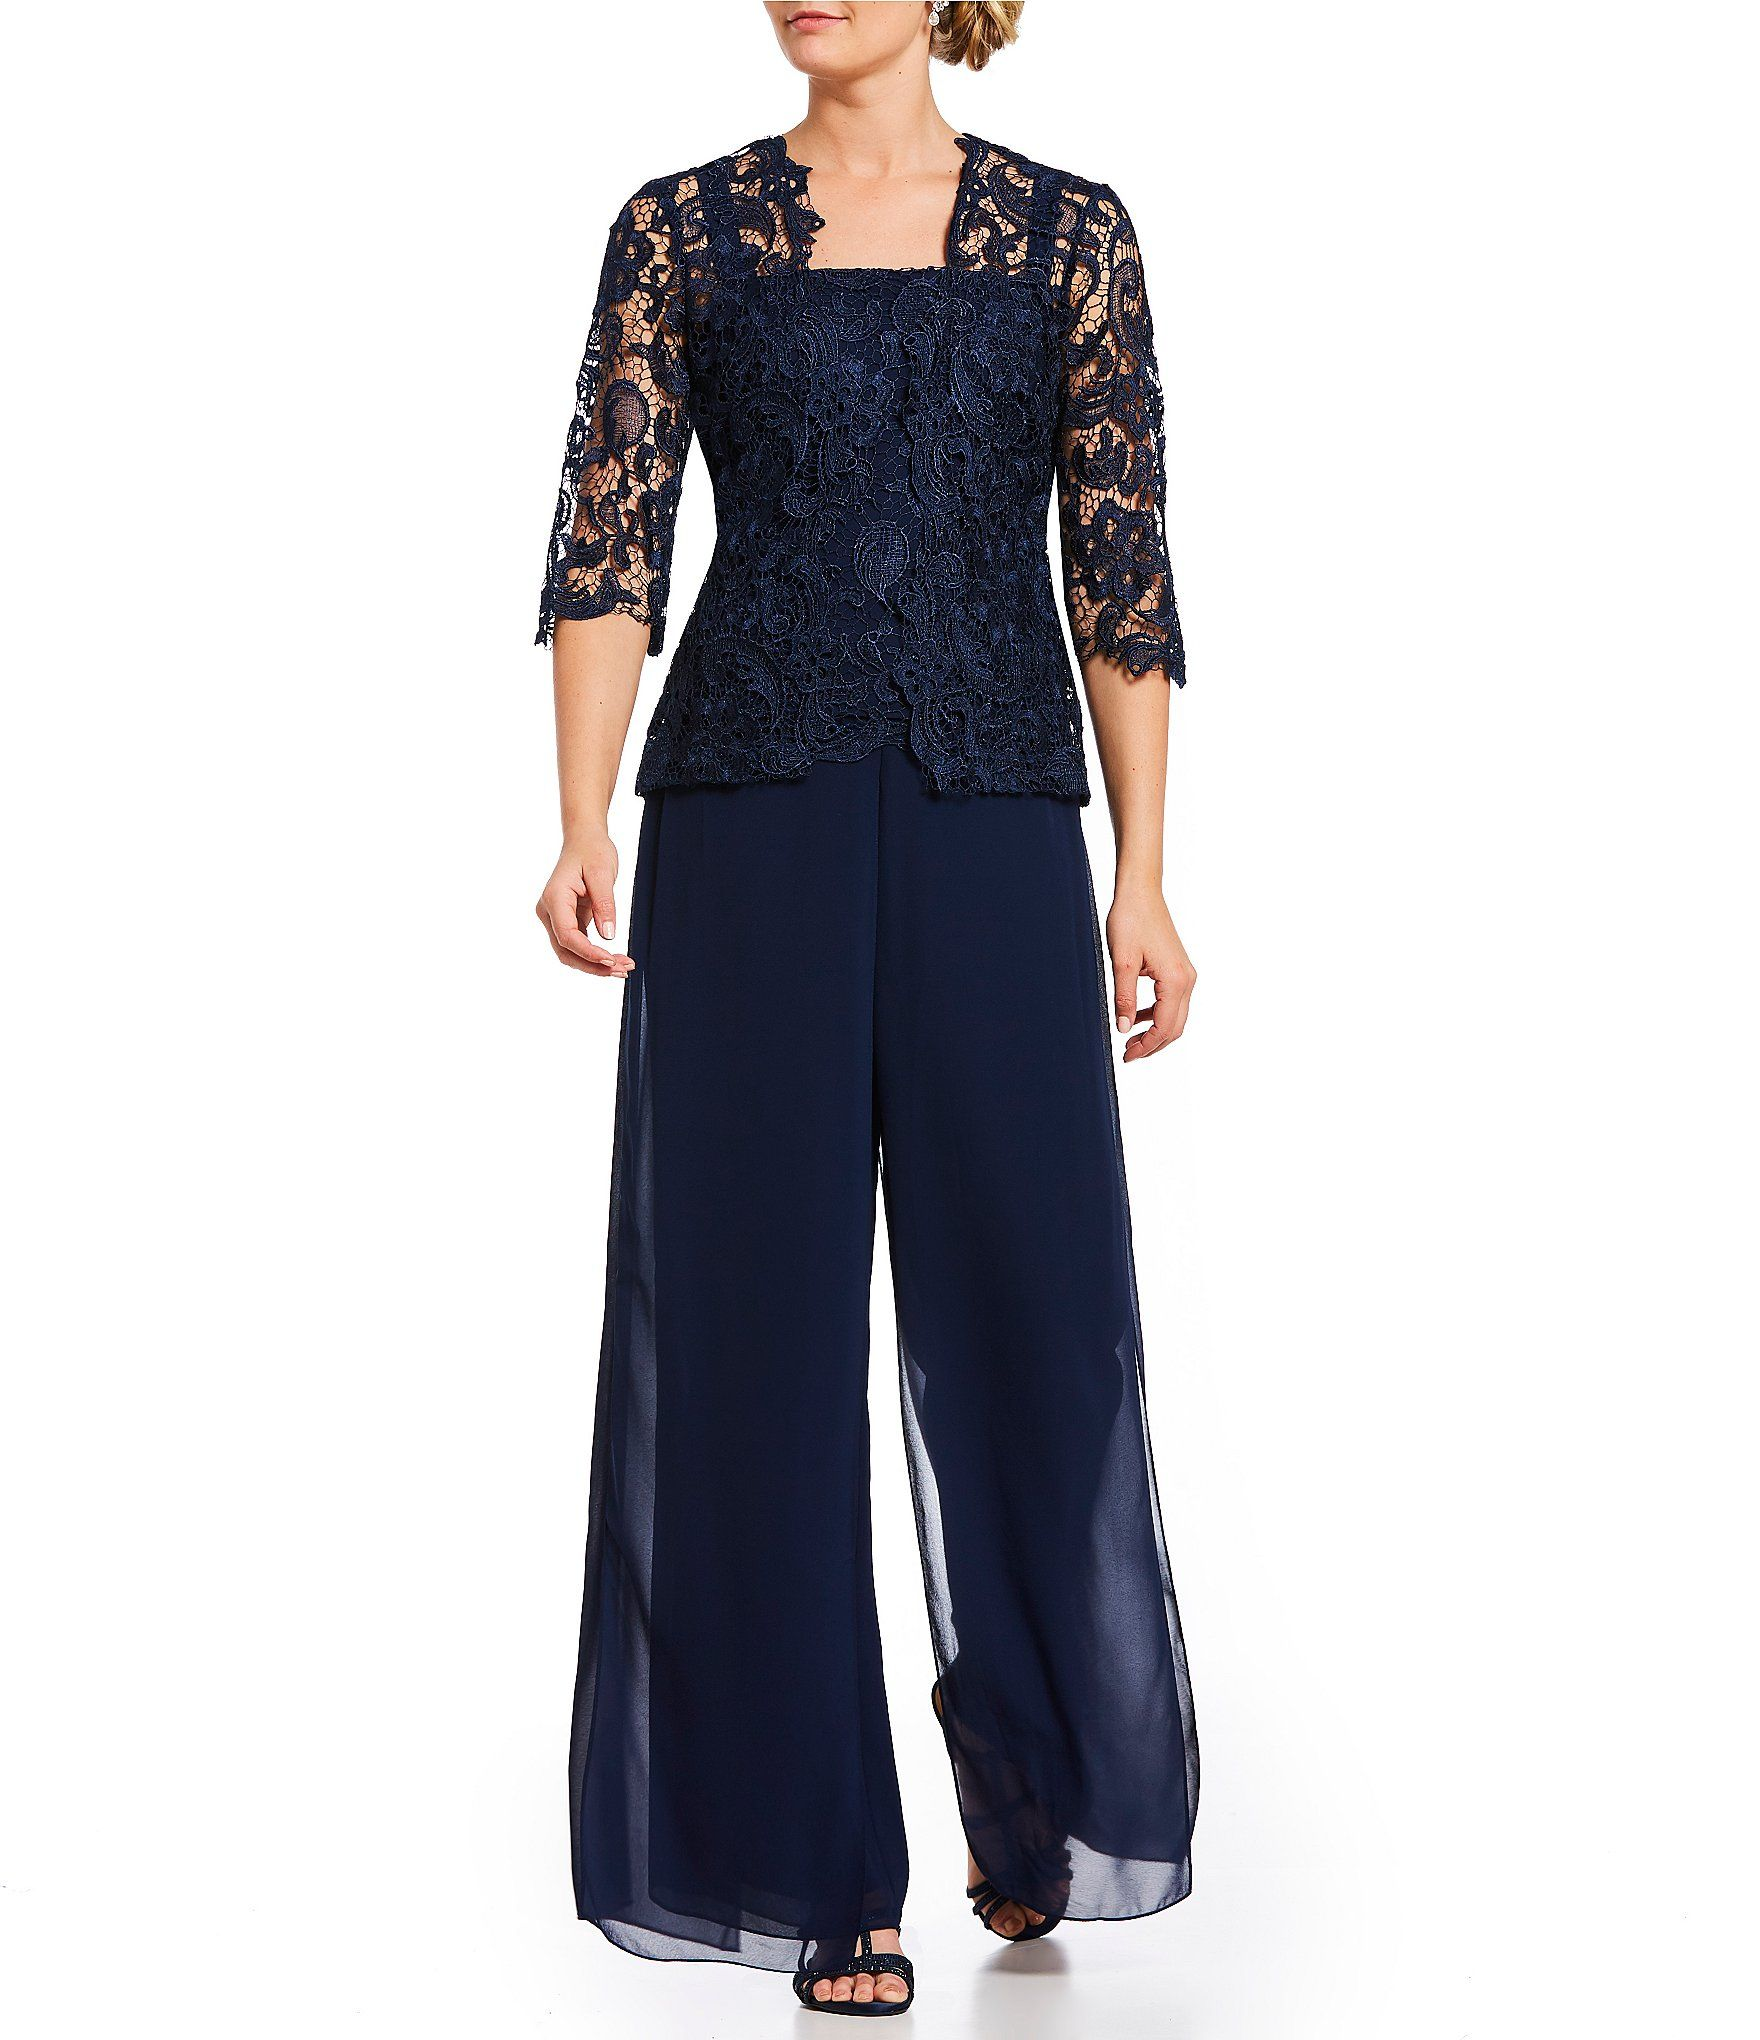 b968d48f3f2e7 Pin by COLLEEN DOLAN on Wedding | Chiffon pants, Evening pant suits ...